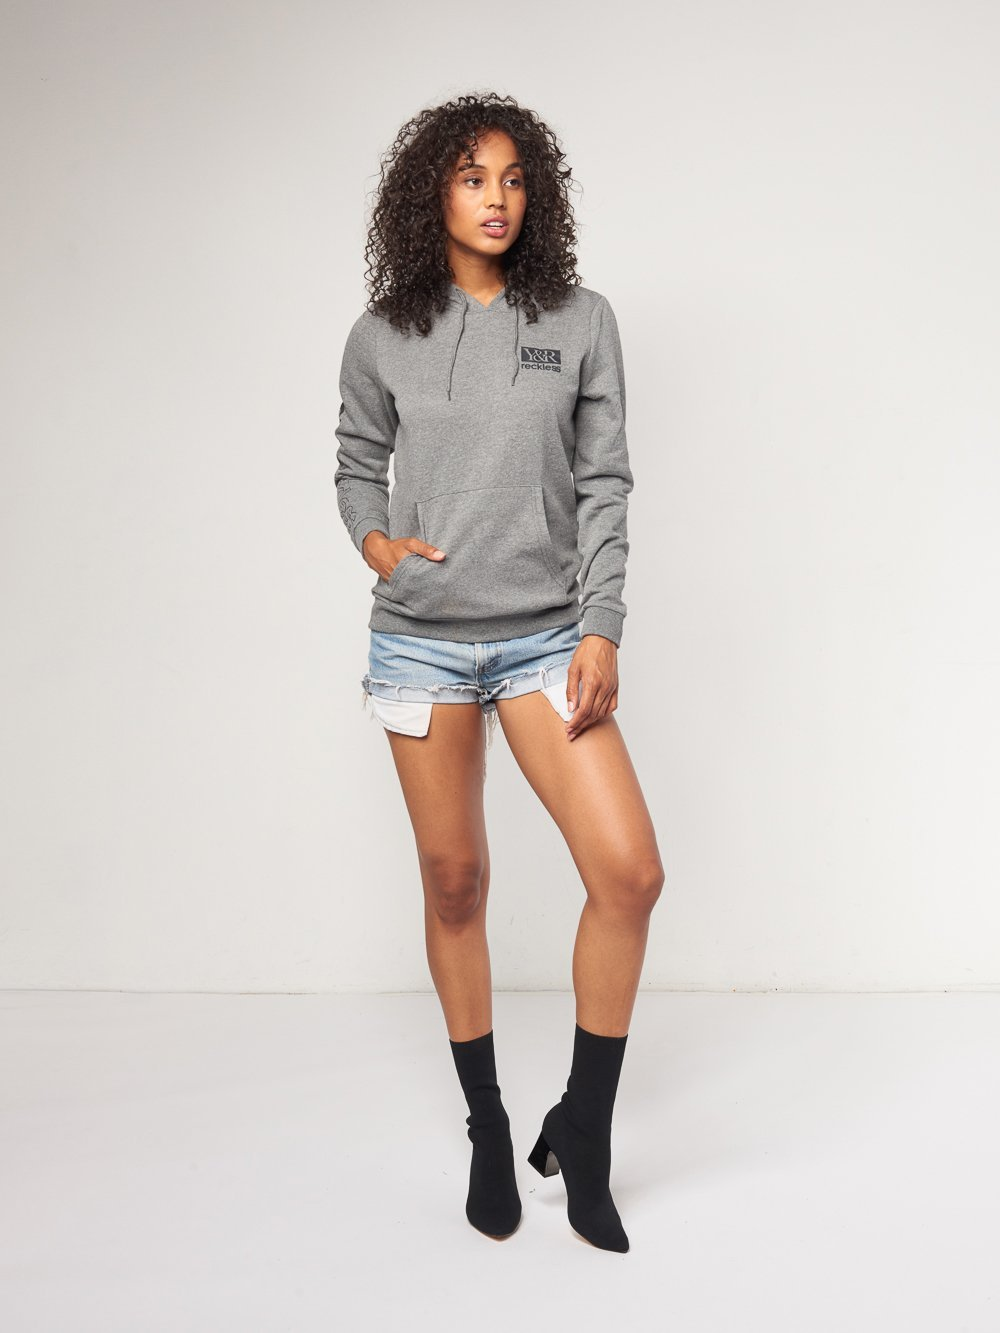 Reckless Girls Womens - Tops - Sweatshirts Valerie Hoodie- Charcoal